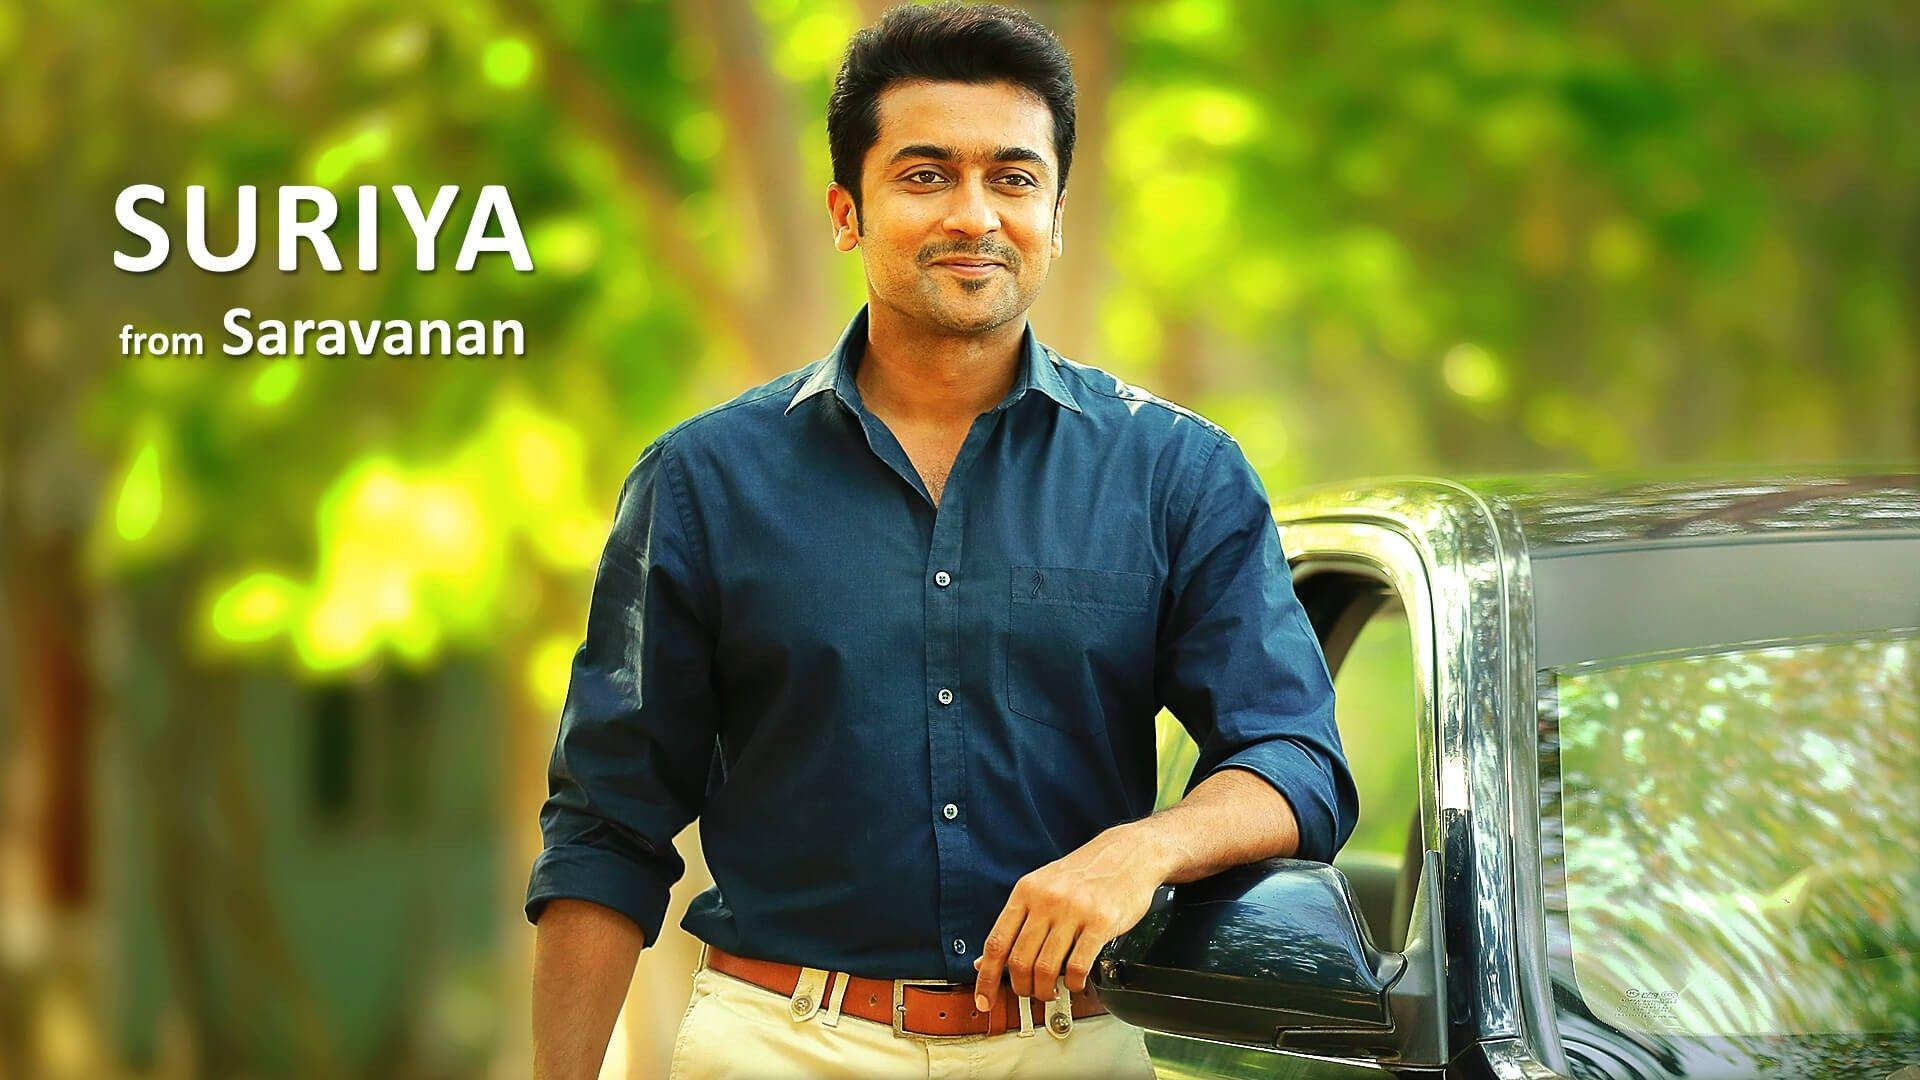 Actor surya hd wallpapers wallpaper cave - 24 surya images ...